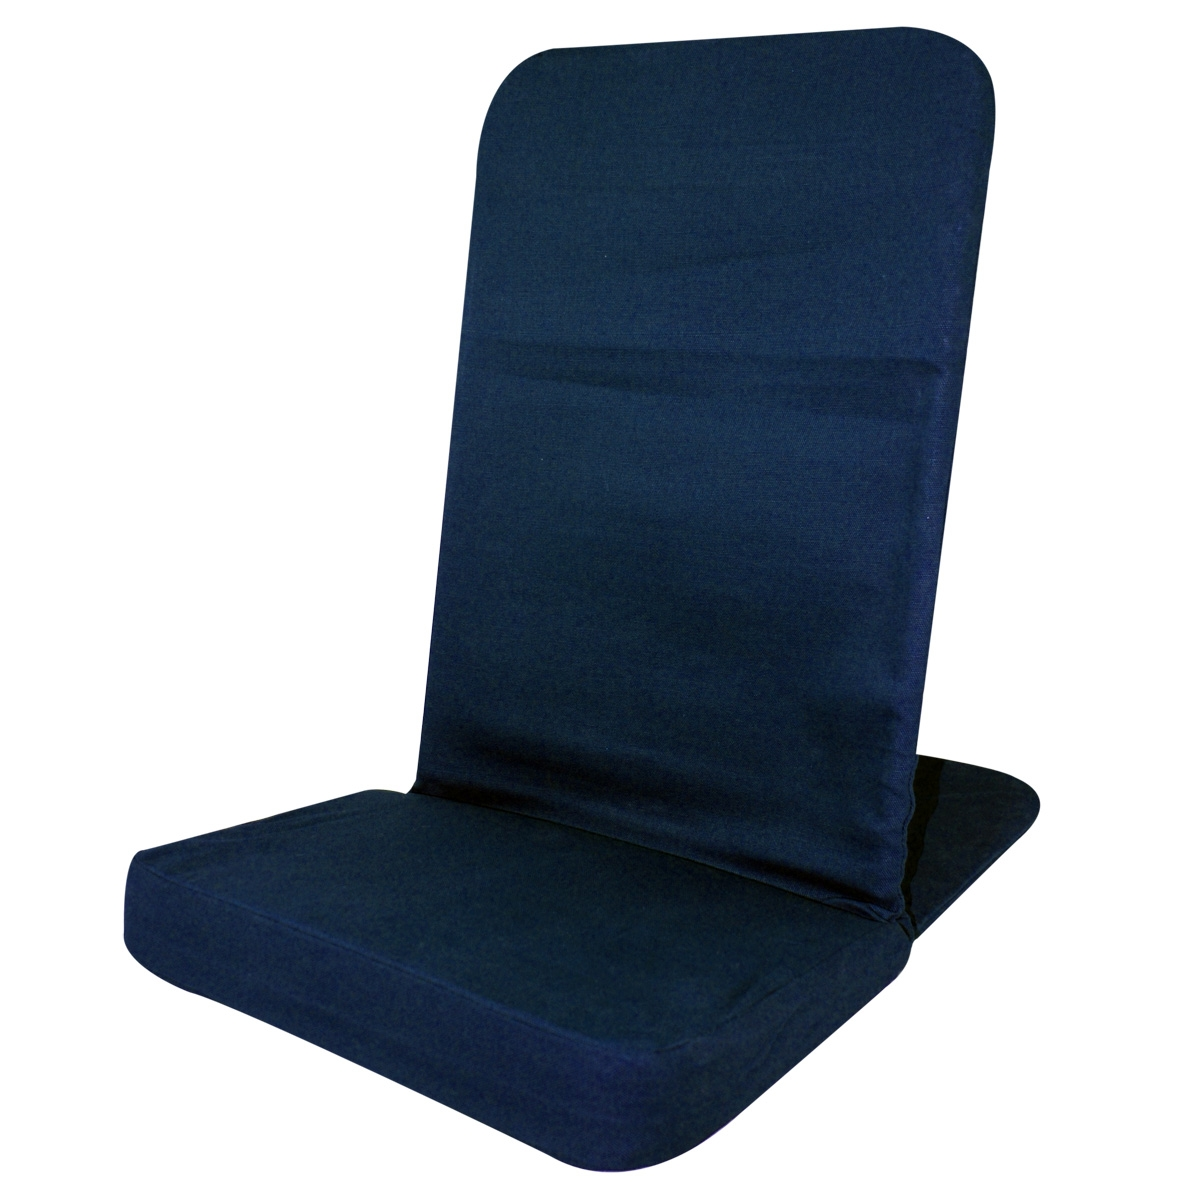 Meditation Chair by YOGA Accessories